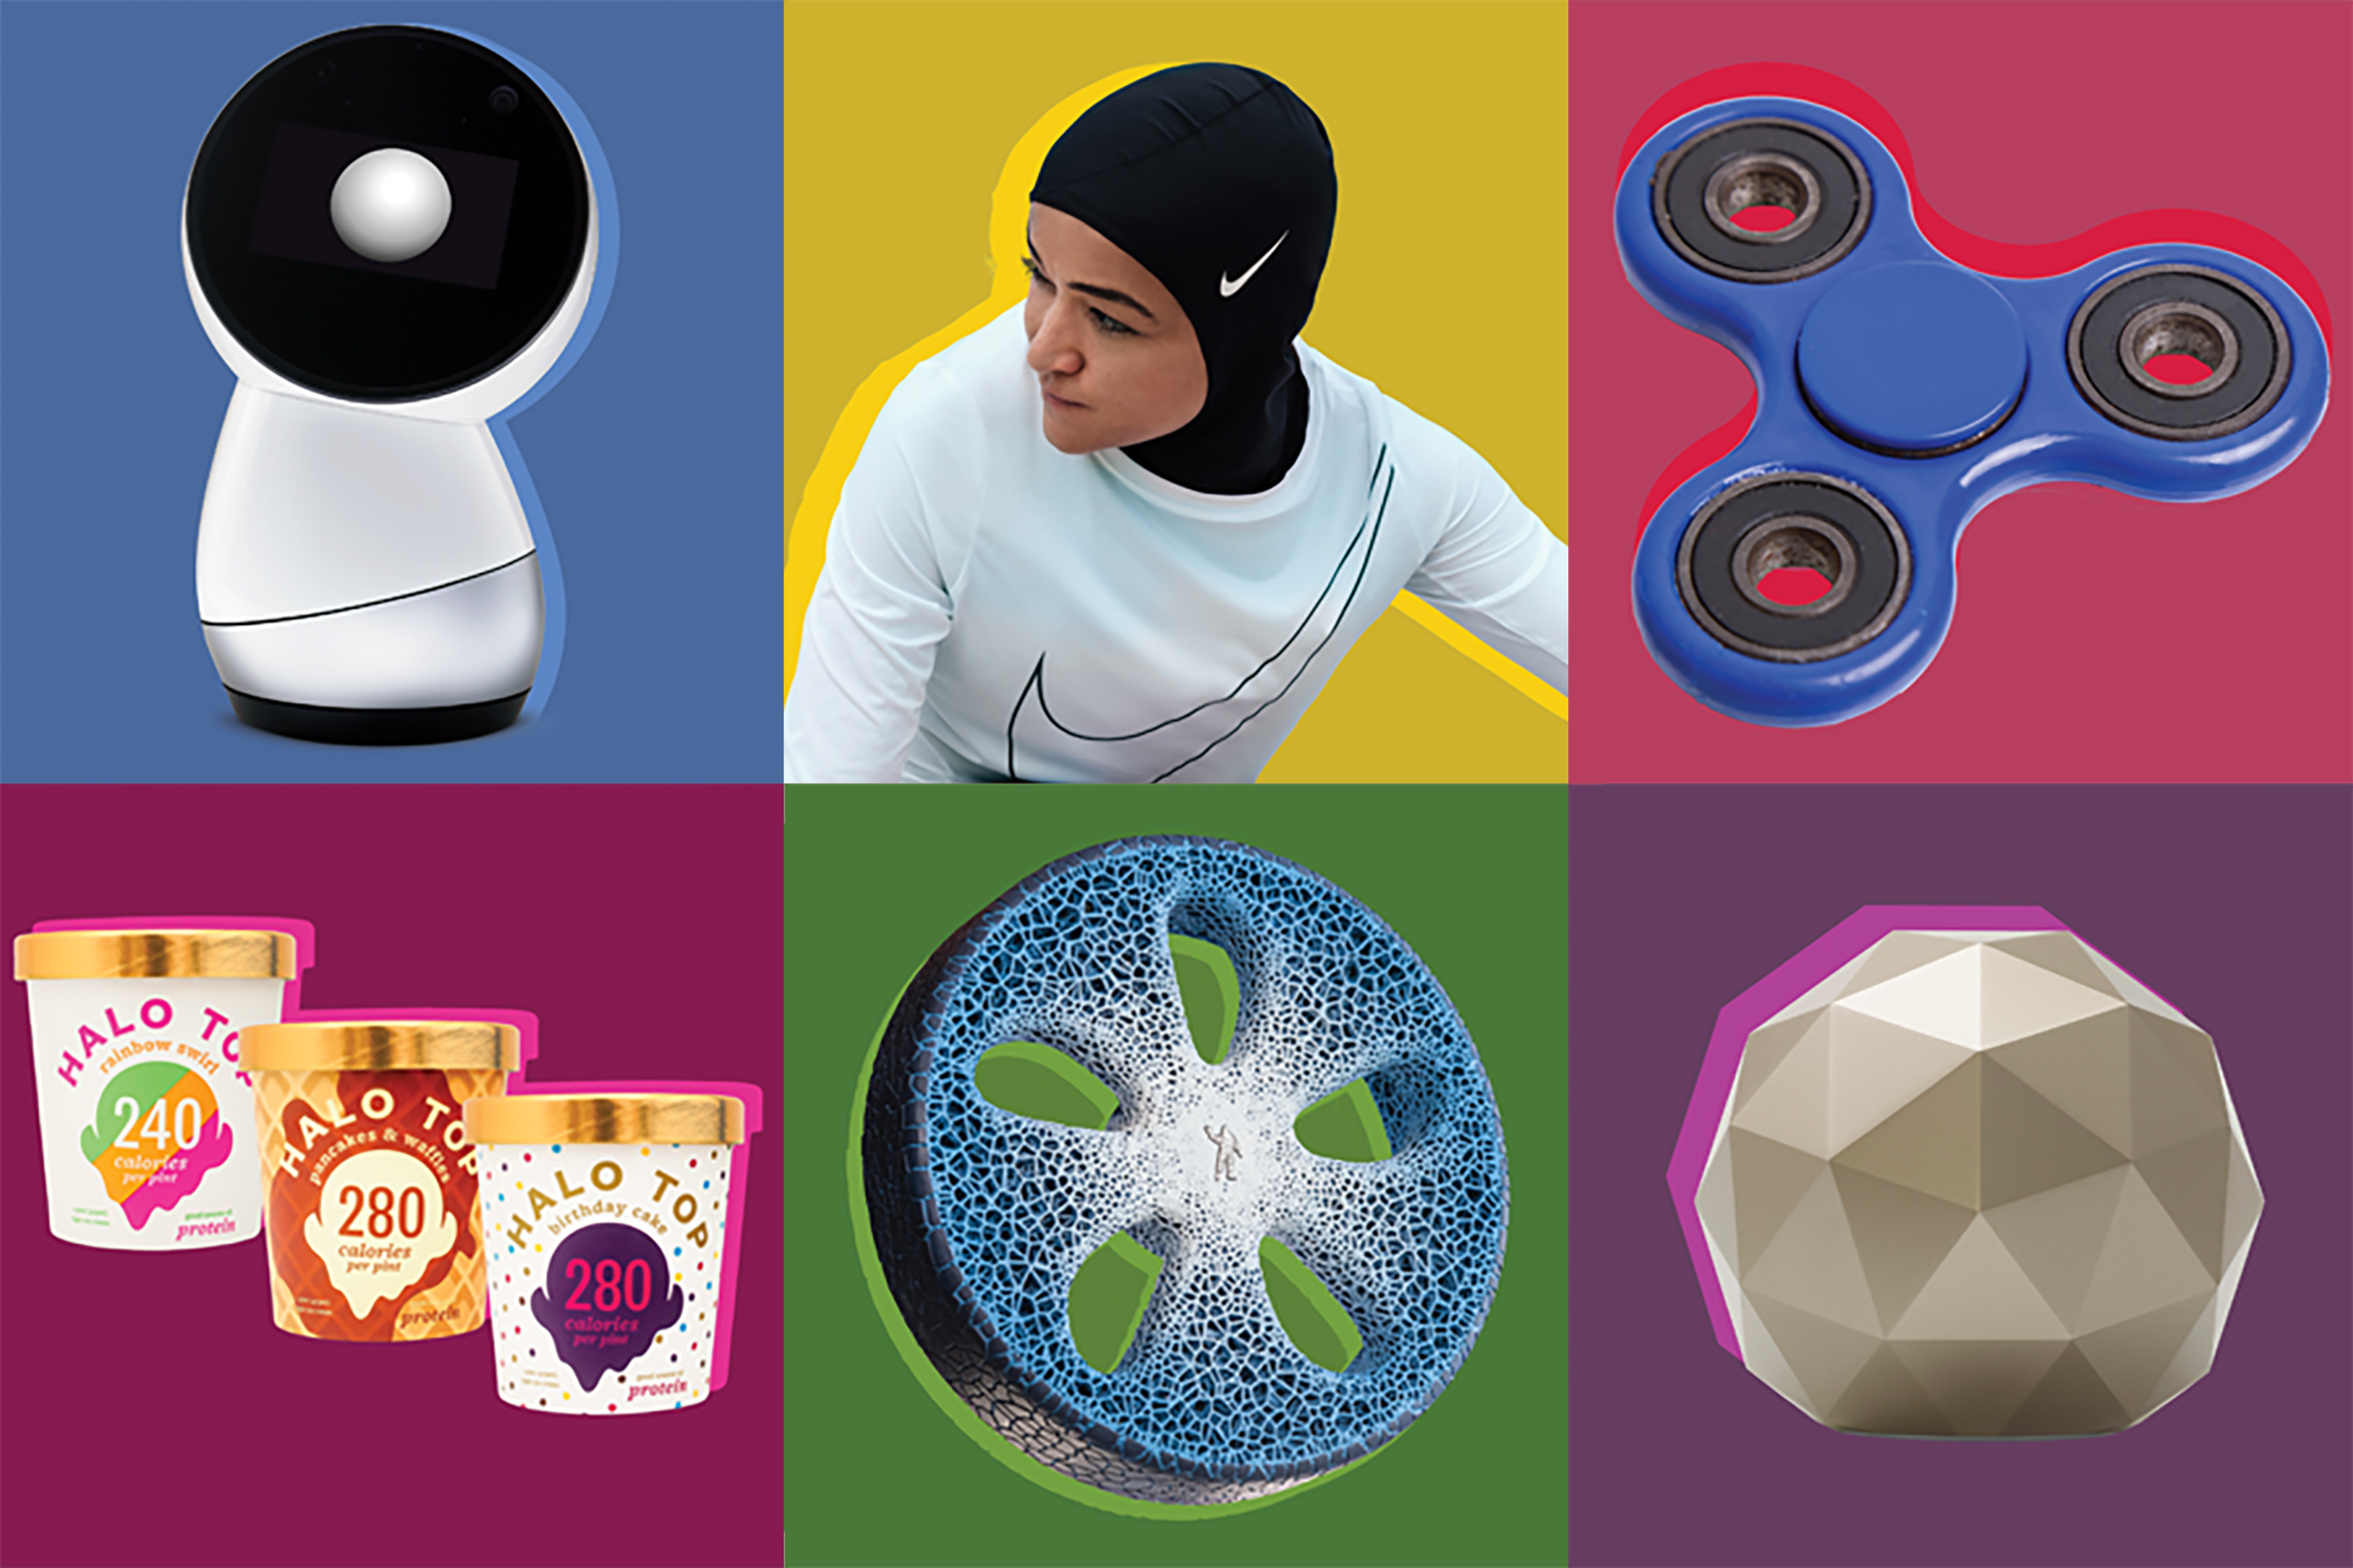 From Halo Top Ice Cream to the Nike Pro Hijab, these are the 25 best inventions of 2017.